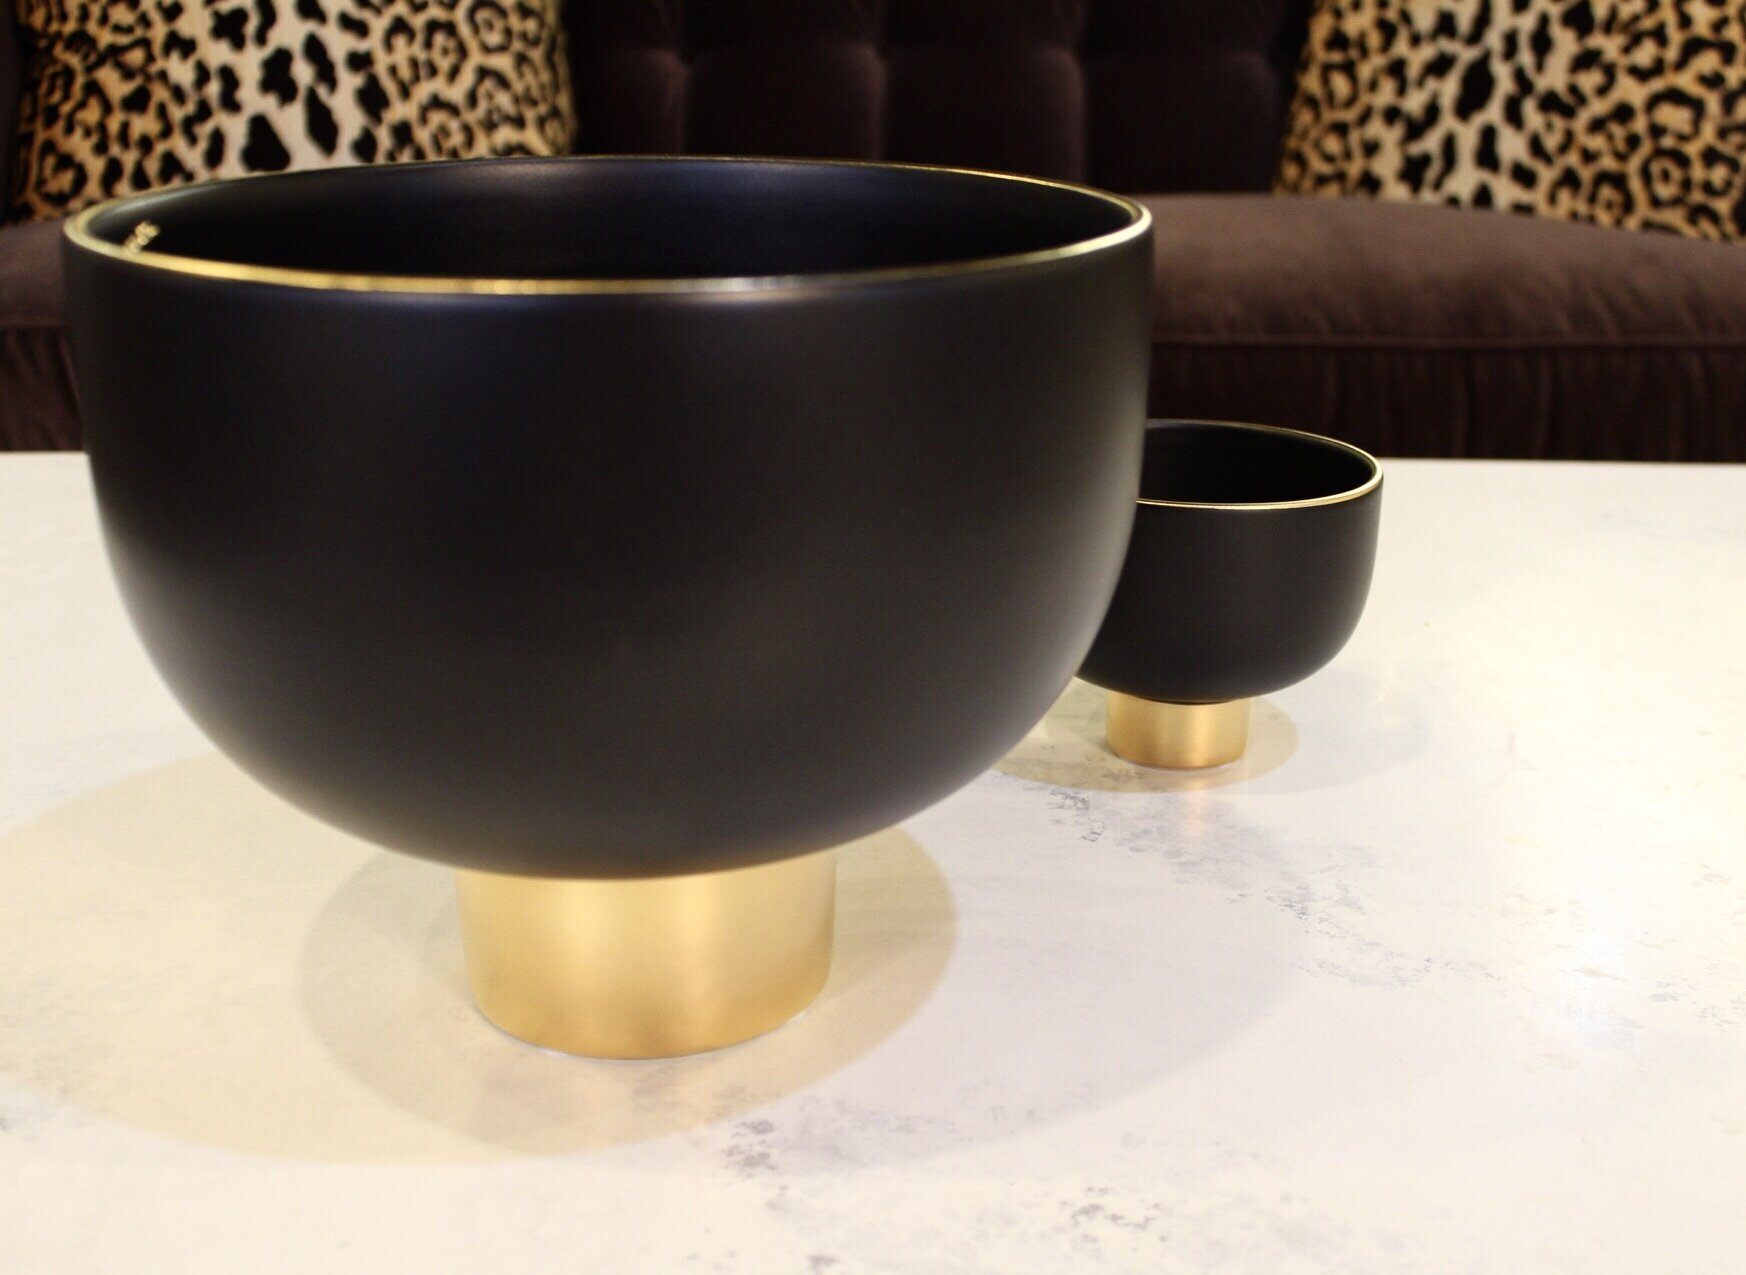 decorative bowls home decor.htm blog     james d  cor  blog     james d  cor